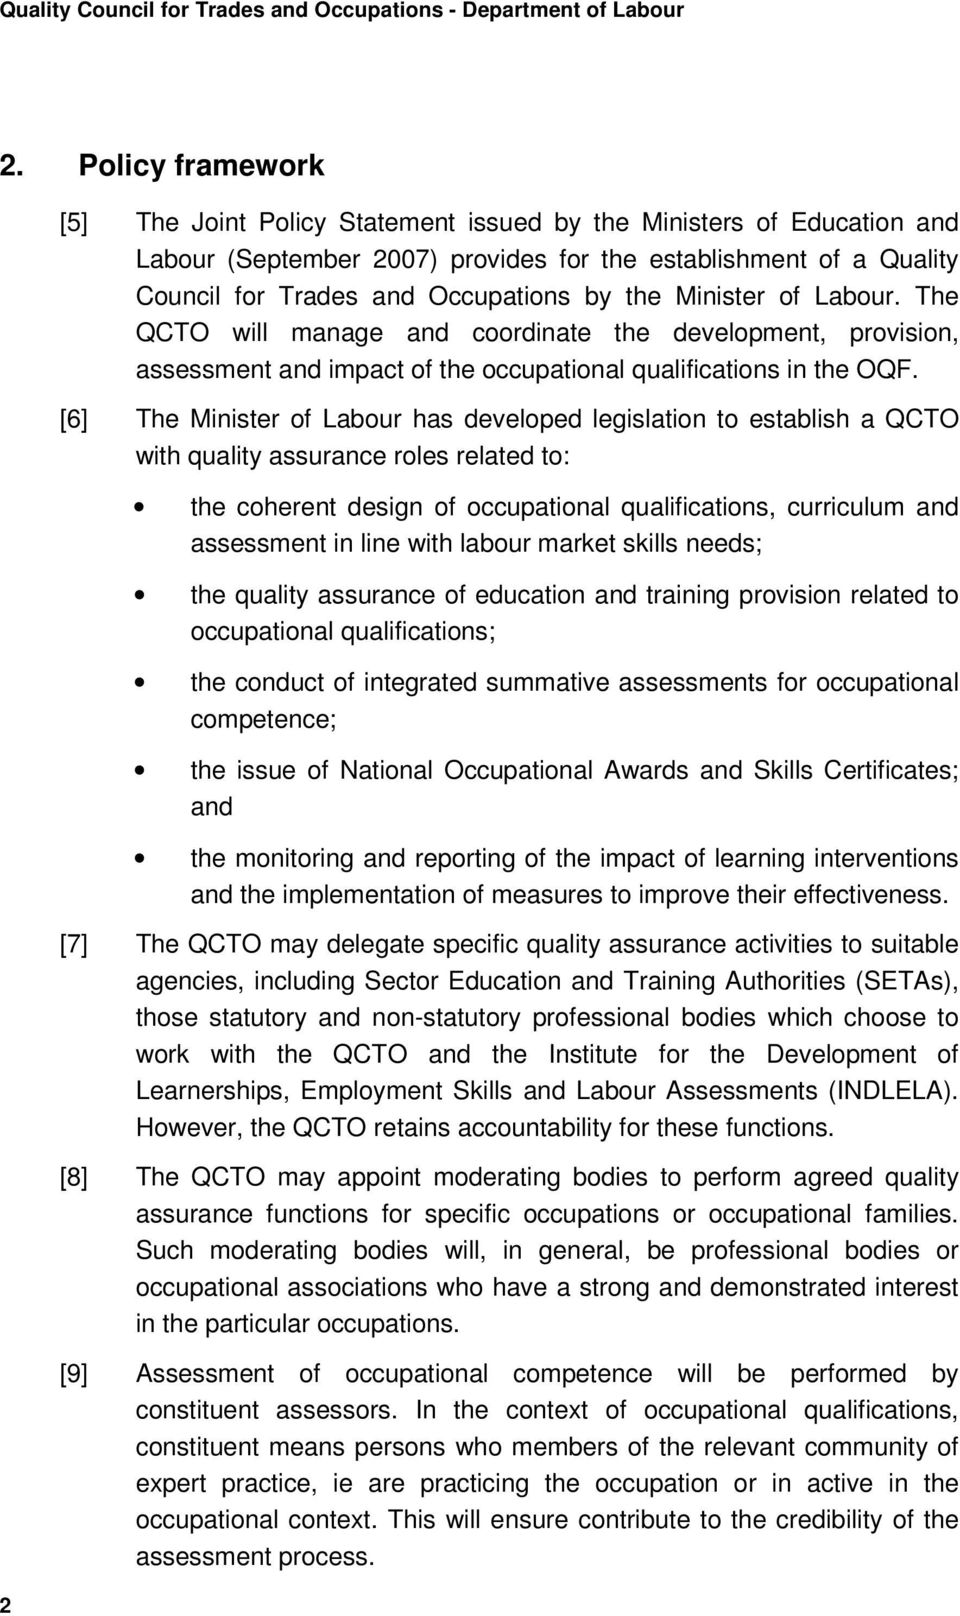 the Minister of Labour. The QCTO will manage and coordinate the development, provision, assessment and impact of the occupational qualifications in the OQF.